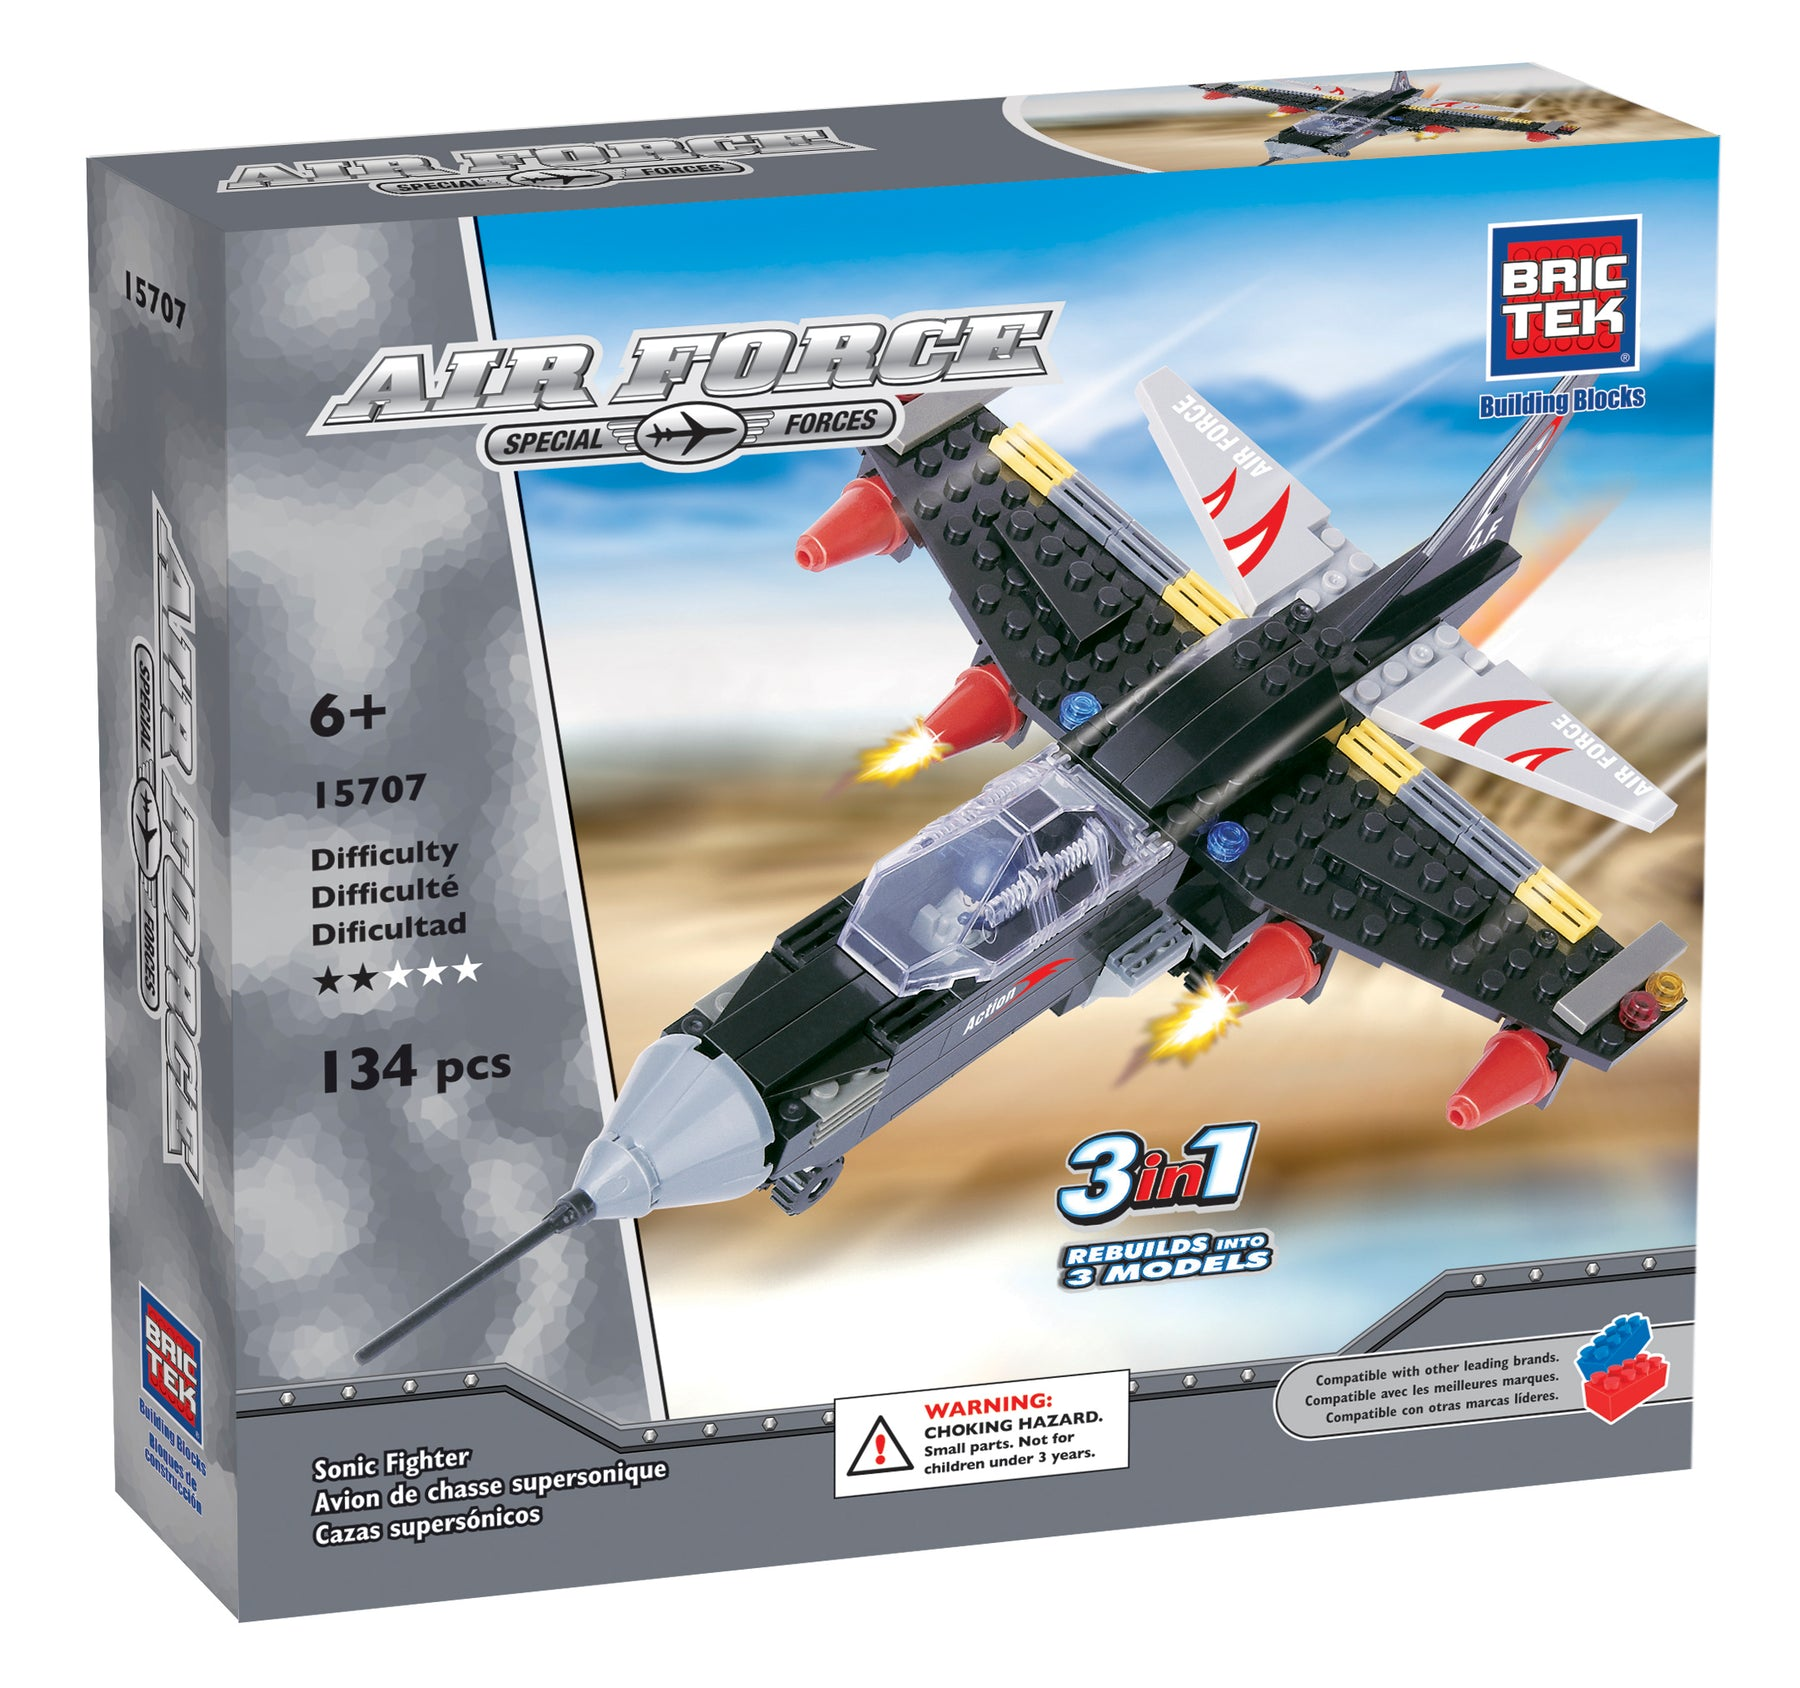 Brictek Blocks Air Force 3 in 1 Pack set - Supersonic Airplane